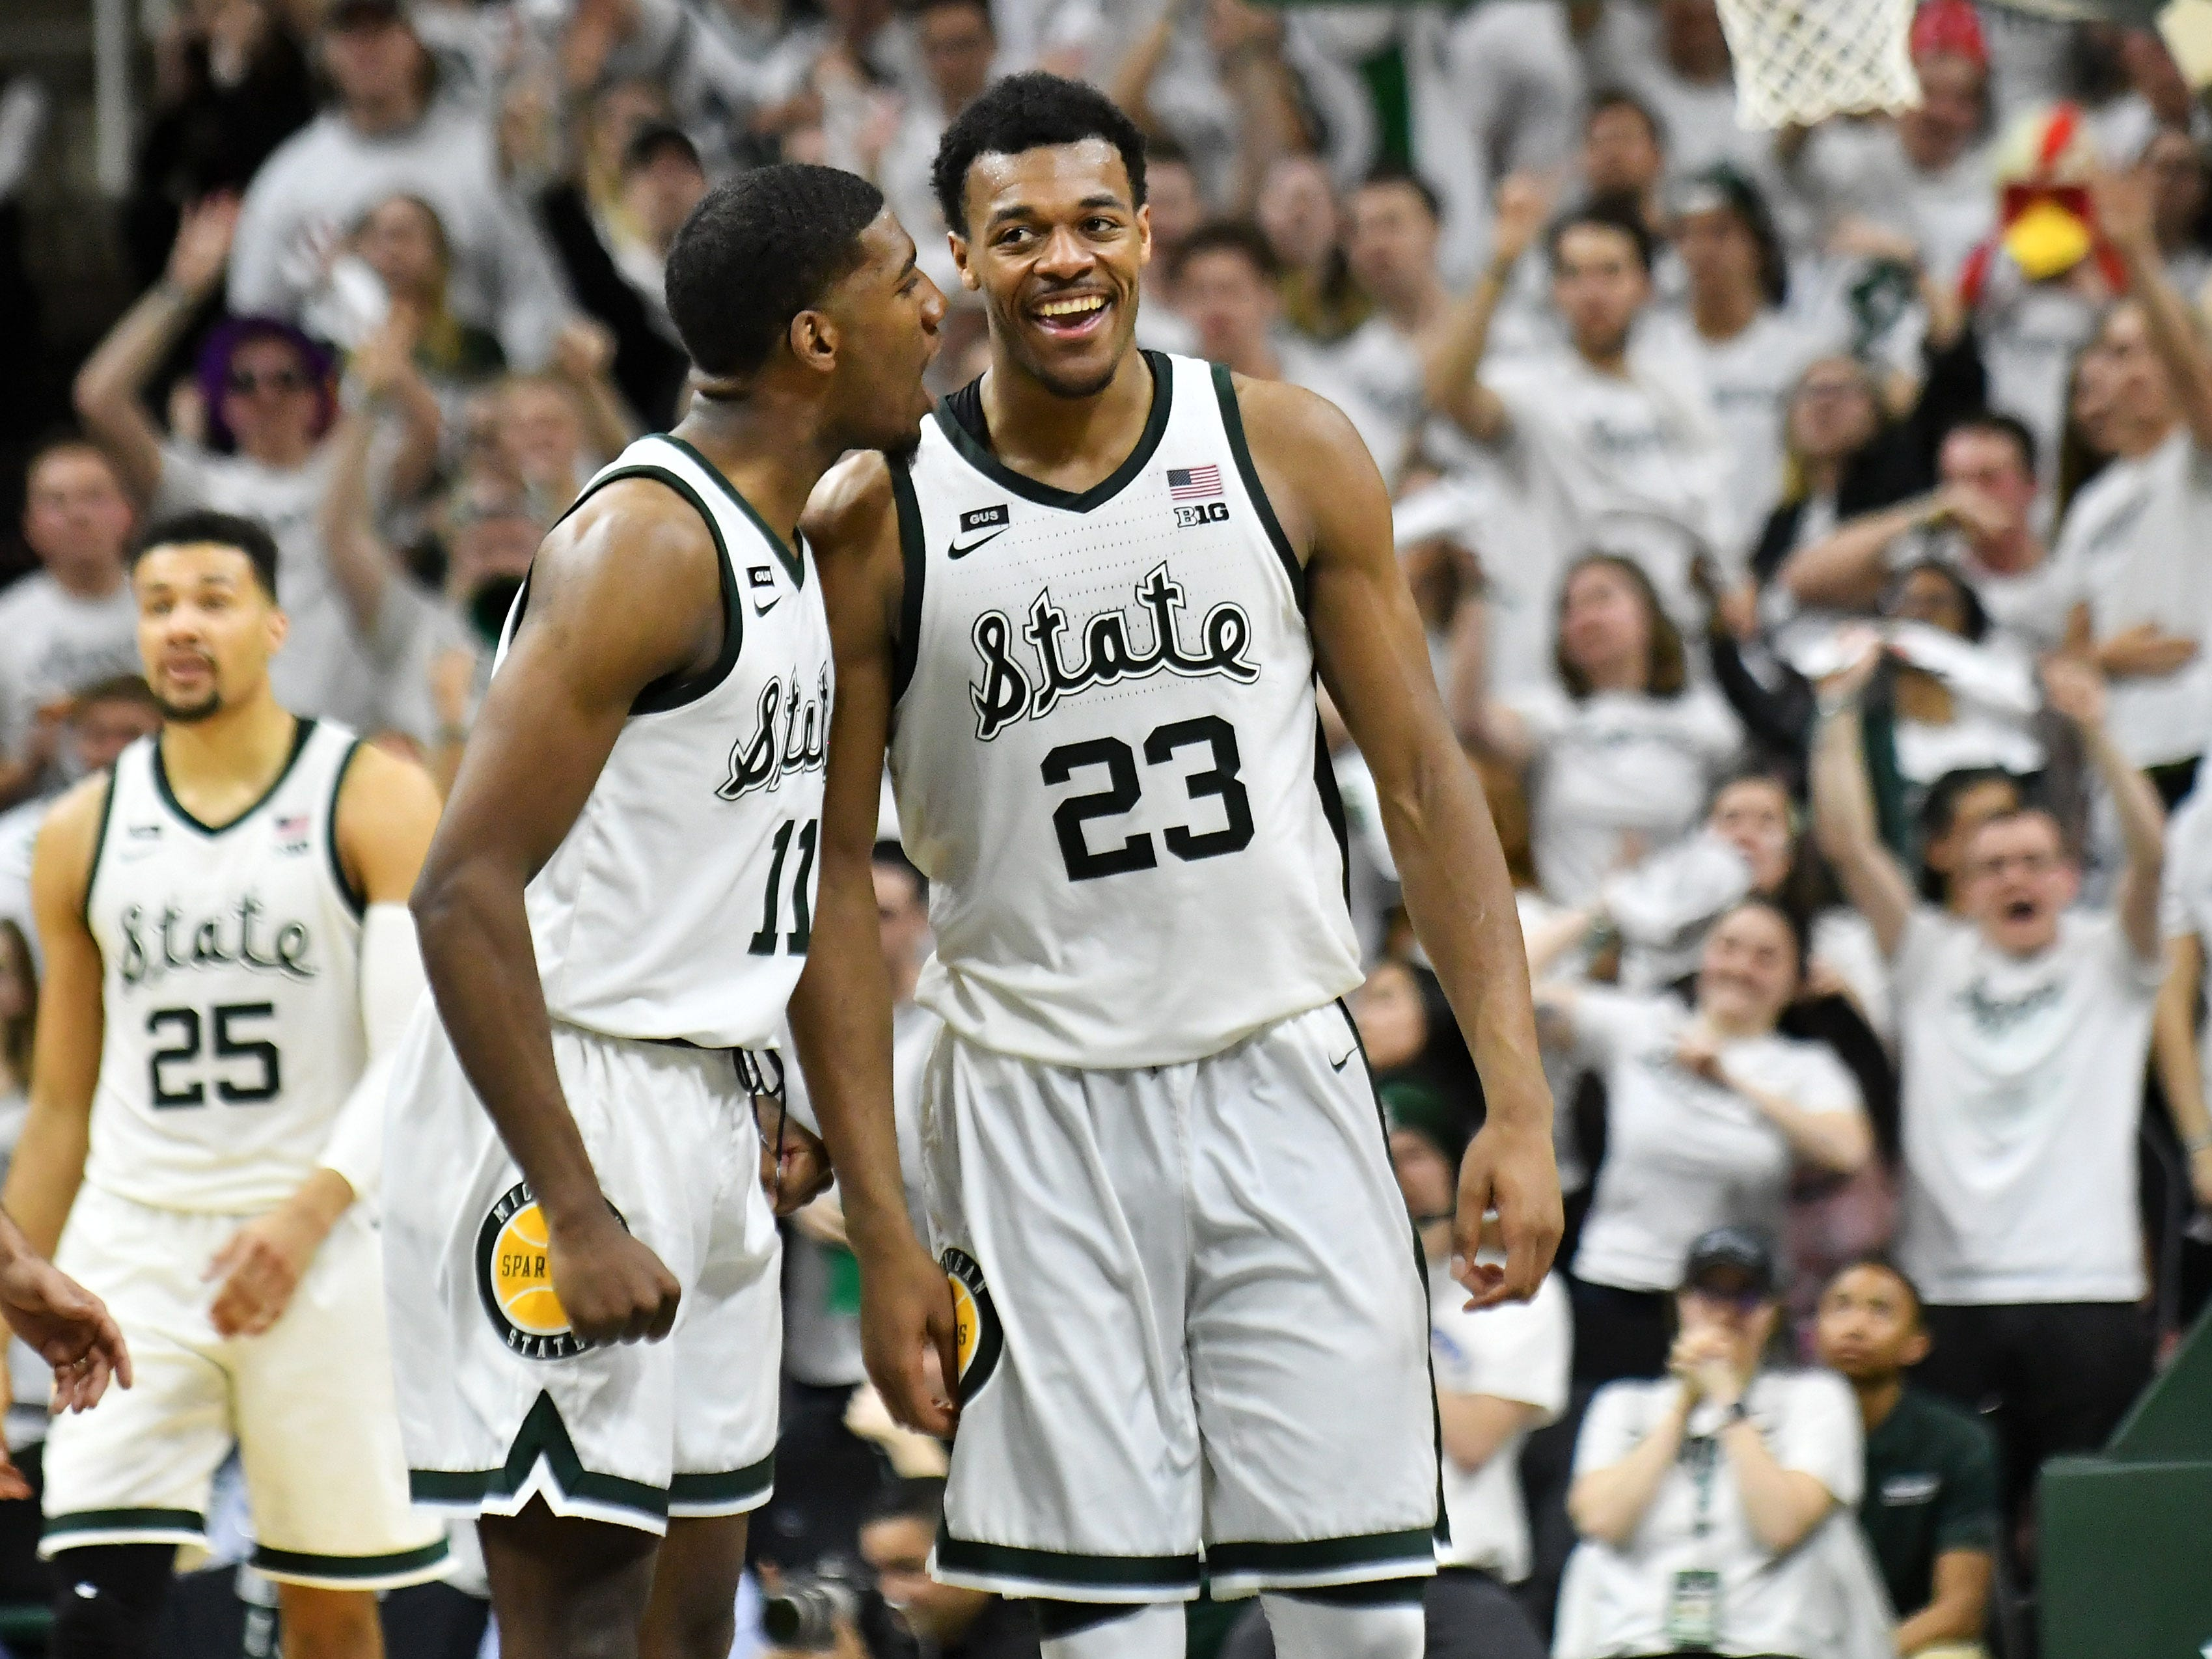 Michigan State forward Aaron Henry (11) shares a moment with Michigan State forward Xavier Tillman (23) while Michigan State leads in the second half.